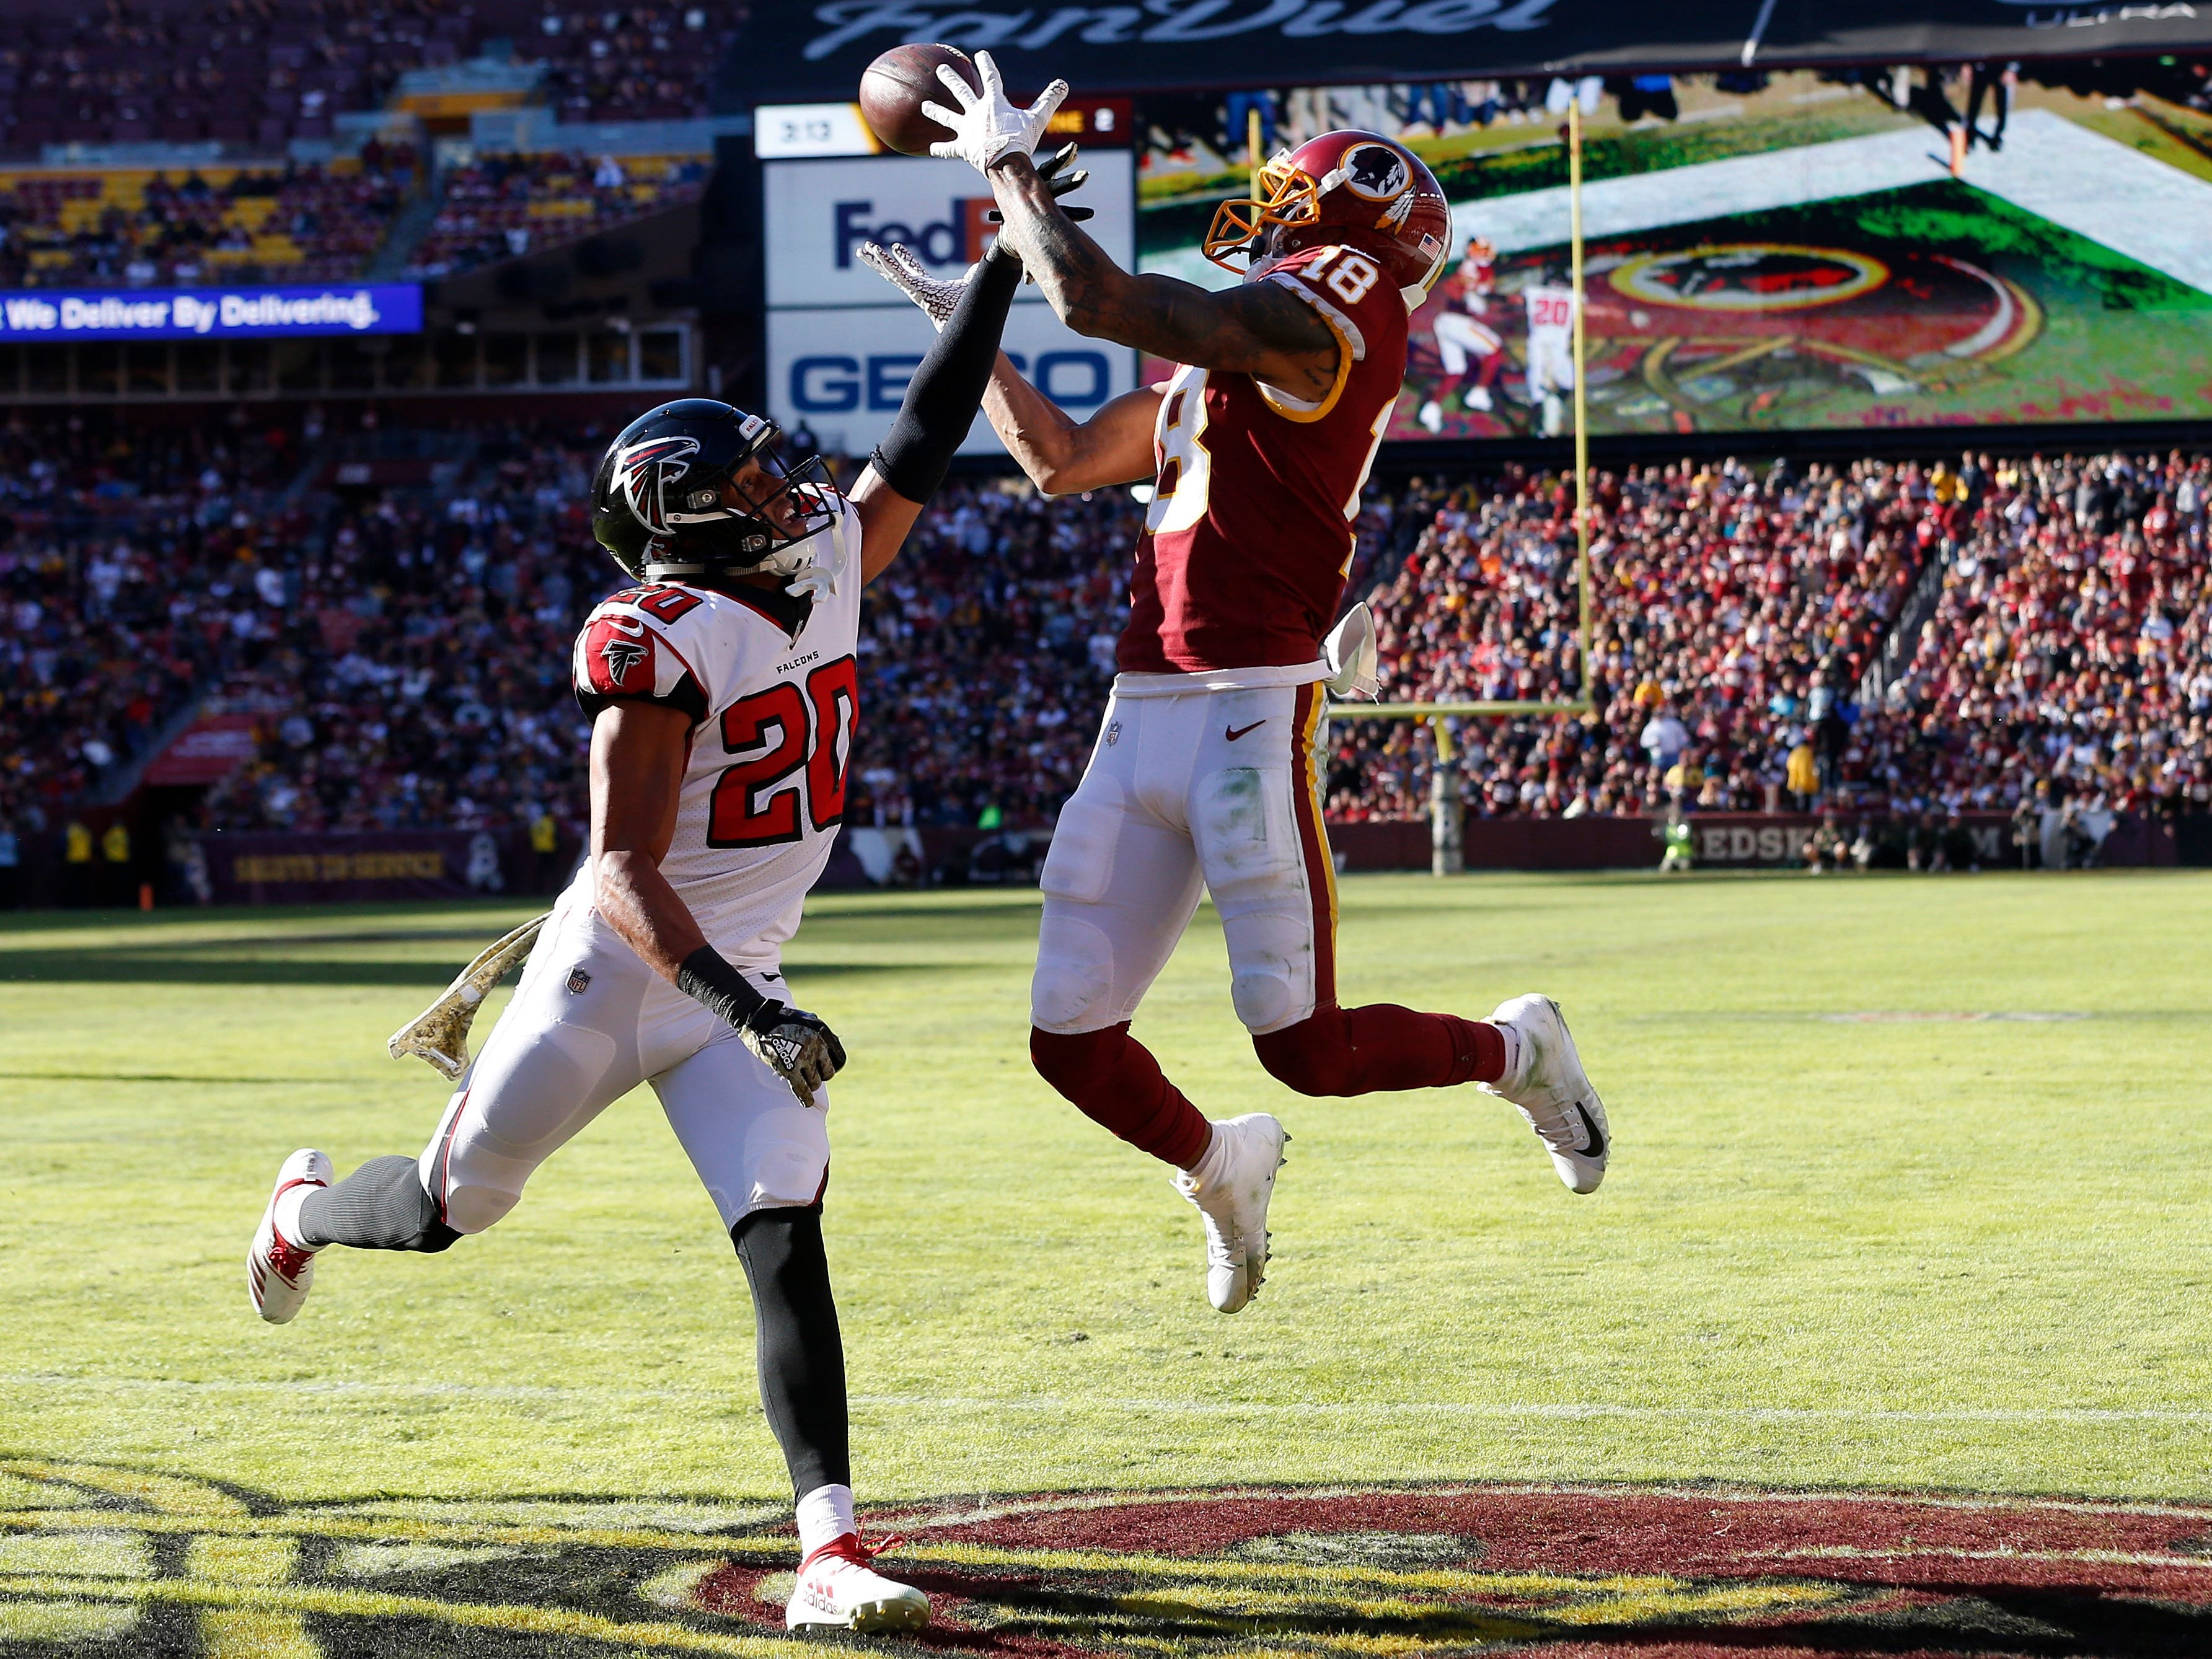 Washington Redskins wide receiver Josh Doctson (18) catches a touchdown pass over Atlanta Falcons free safety Isaiah Oliver (20) in the second quarter at FedExField.